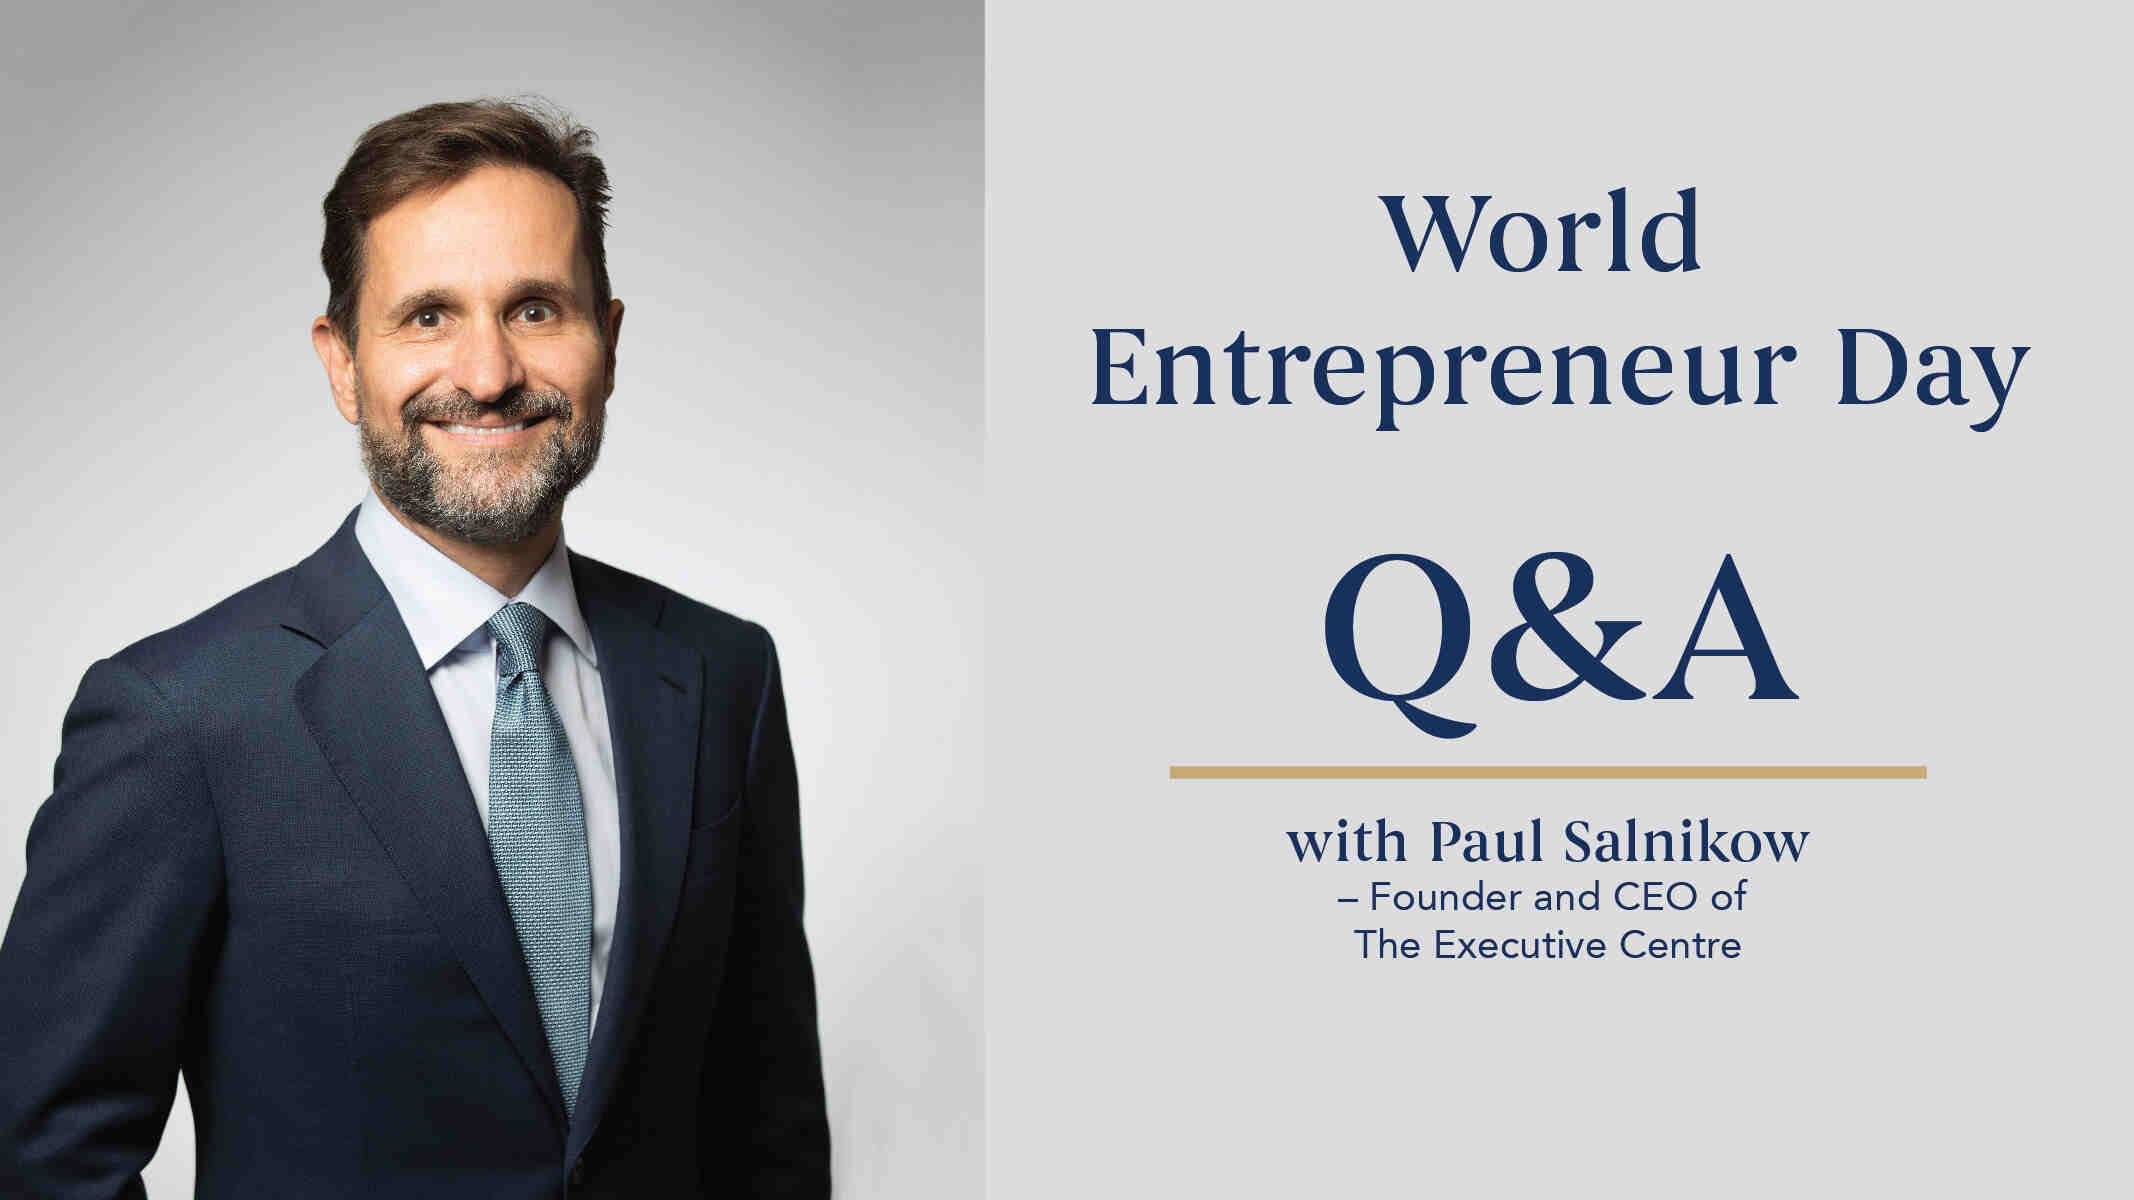 World Entrepreneur Day | A Q&A With Paul Salnikow